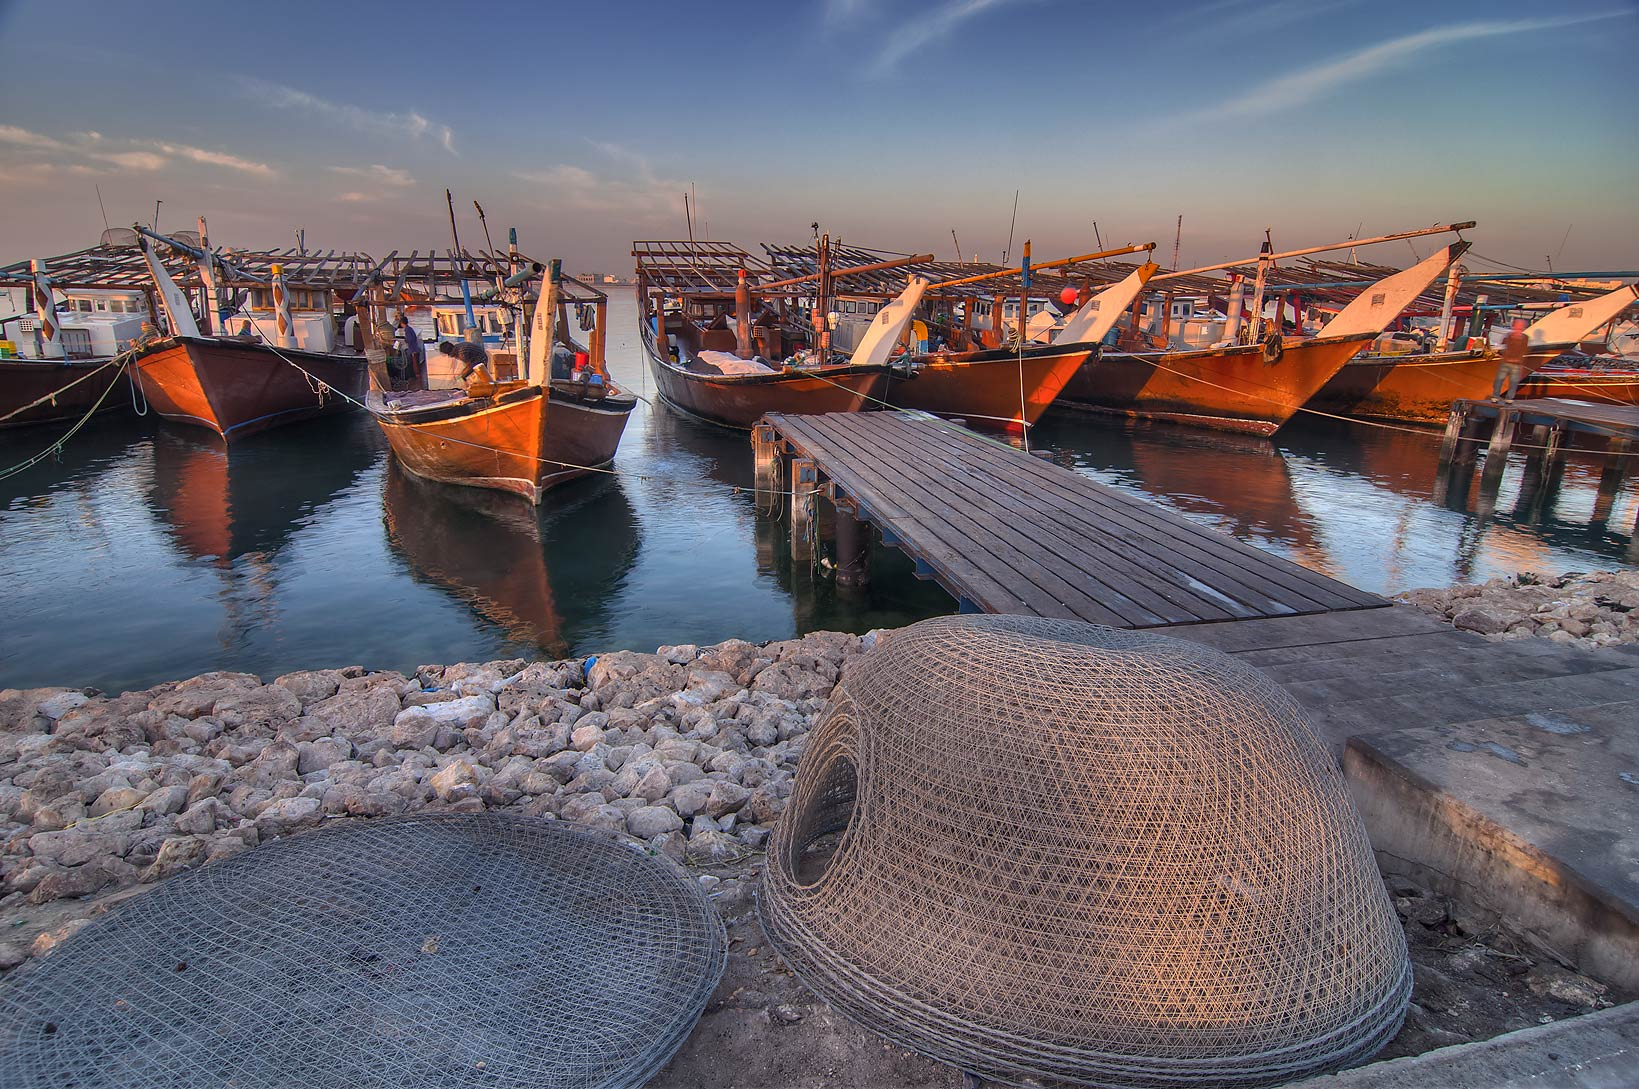 Dhow fishing boats in harbor in Al Wakra at sunrise. Qatar